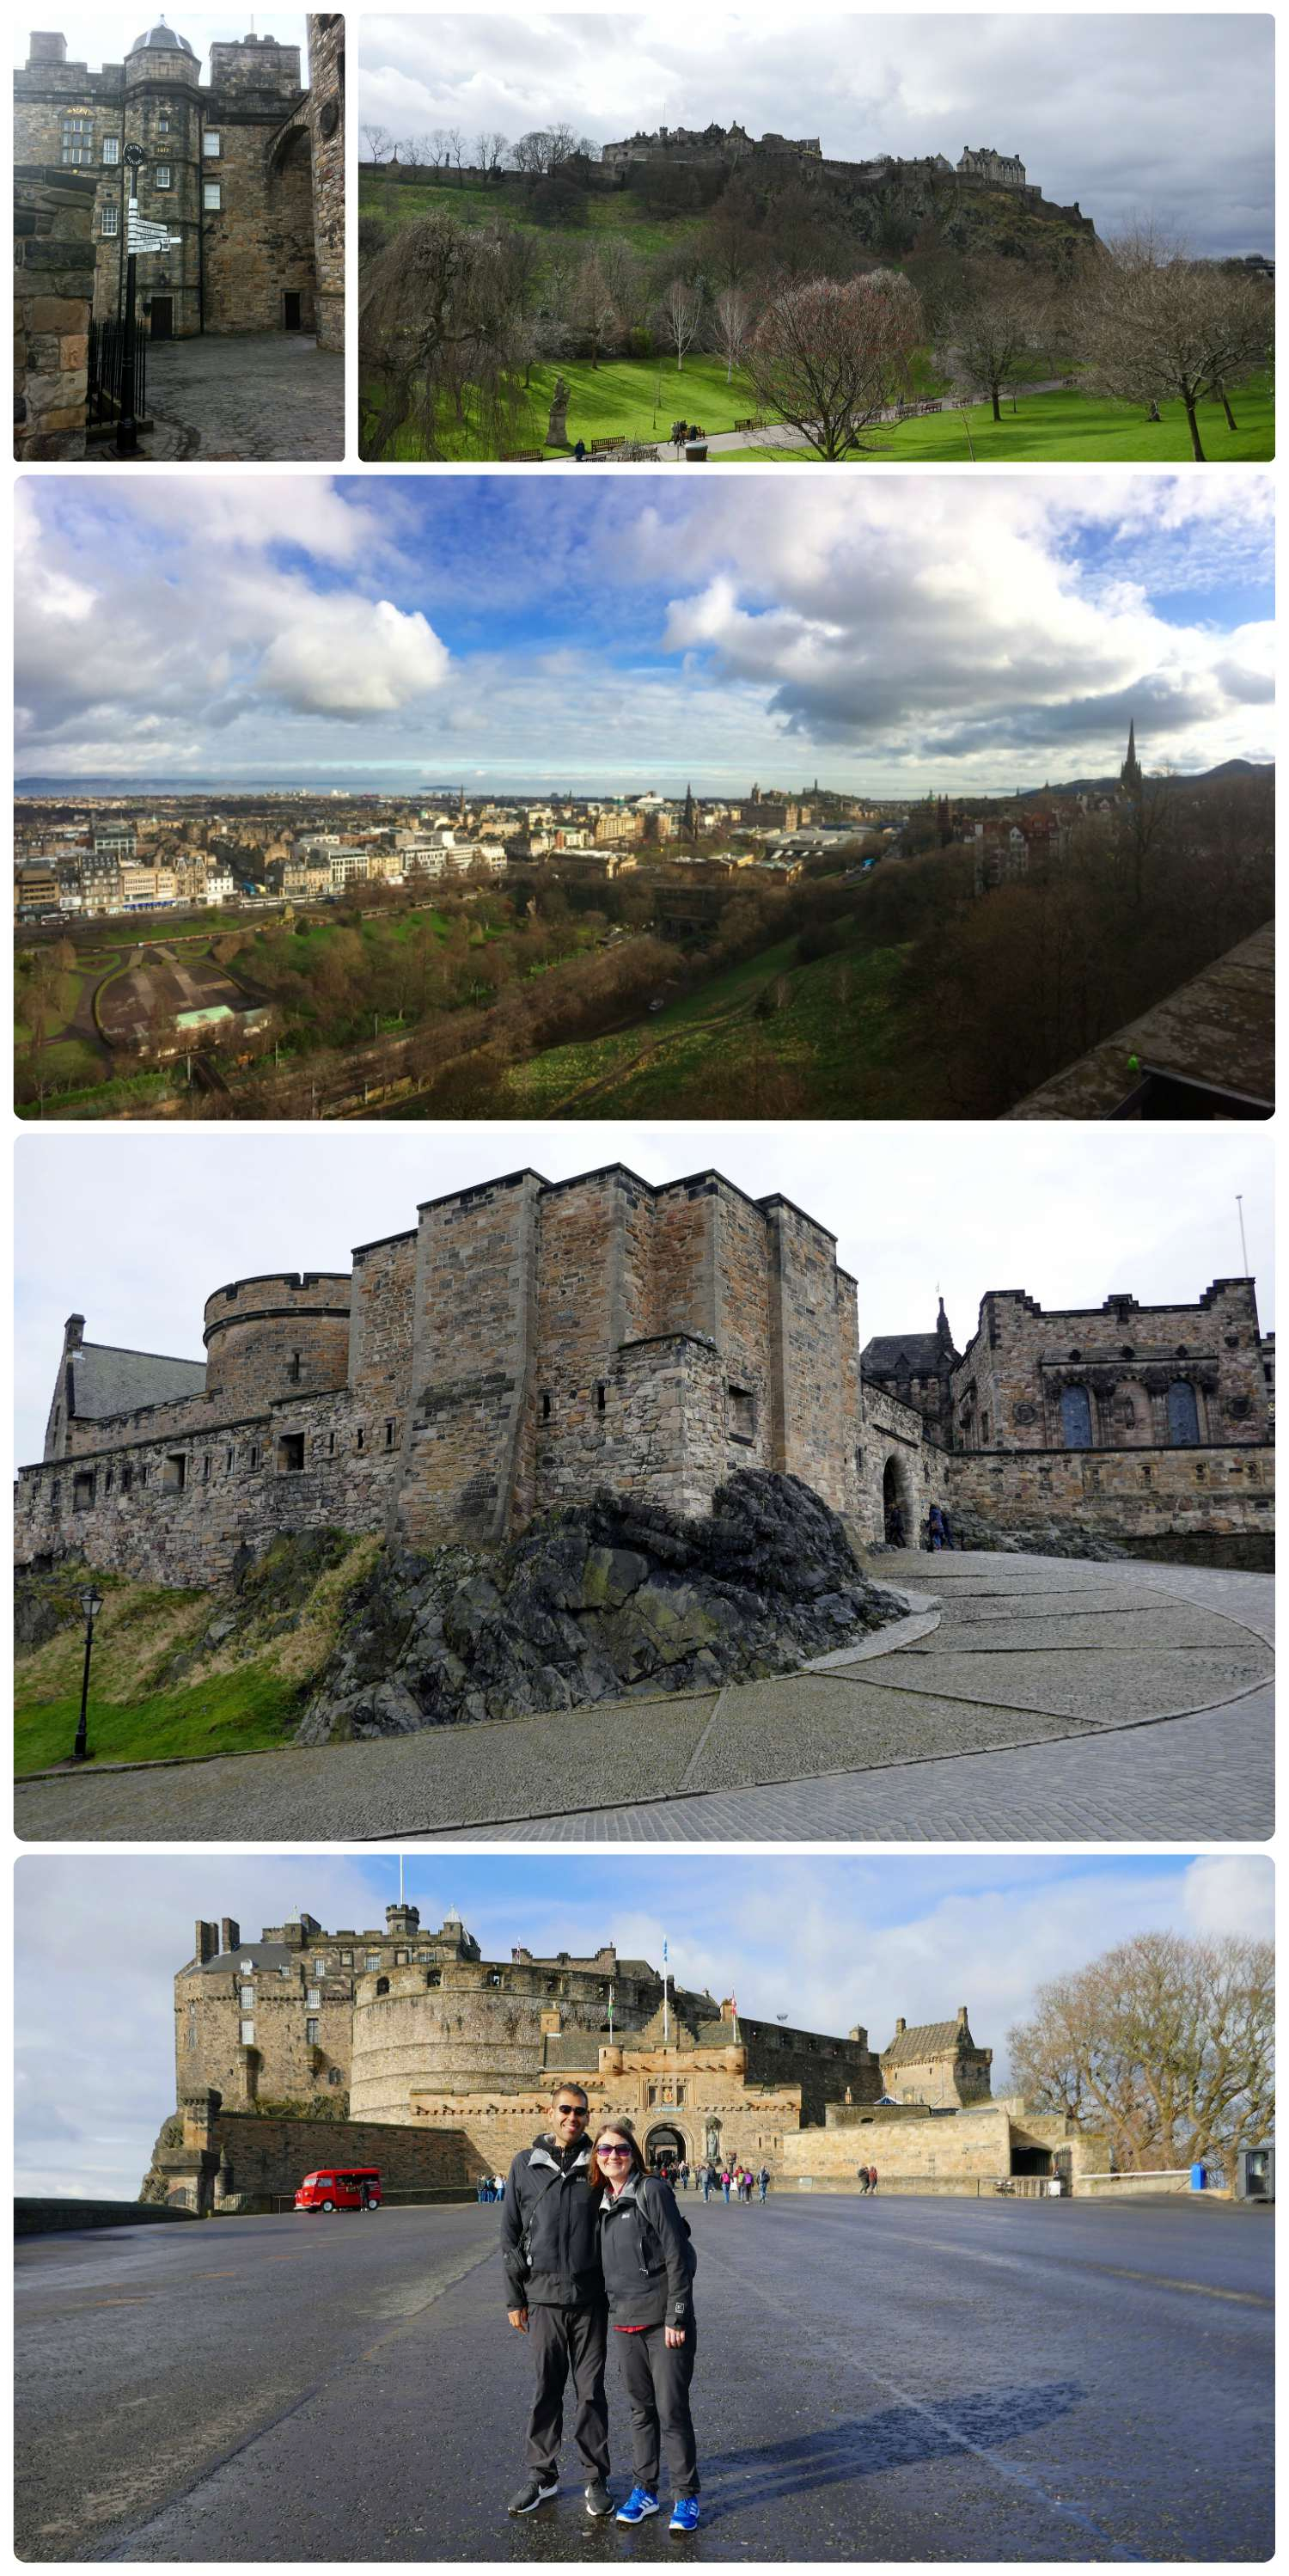 Edinburgh, Scotland, United Kingdom. Top to bottom, left to right: Directional sign at Edinburgh Castle, Princess Street Gardens with view of Edinburgh Castle, view of city from the top of the castle, inside the castle, us at Edinburgh Castle.